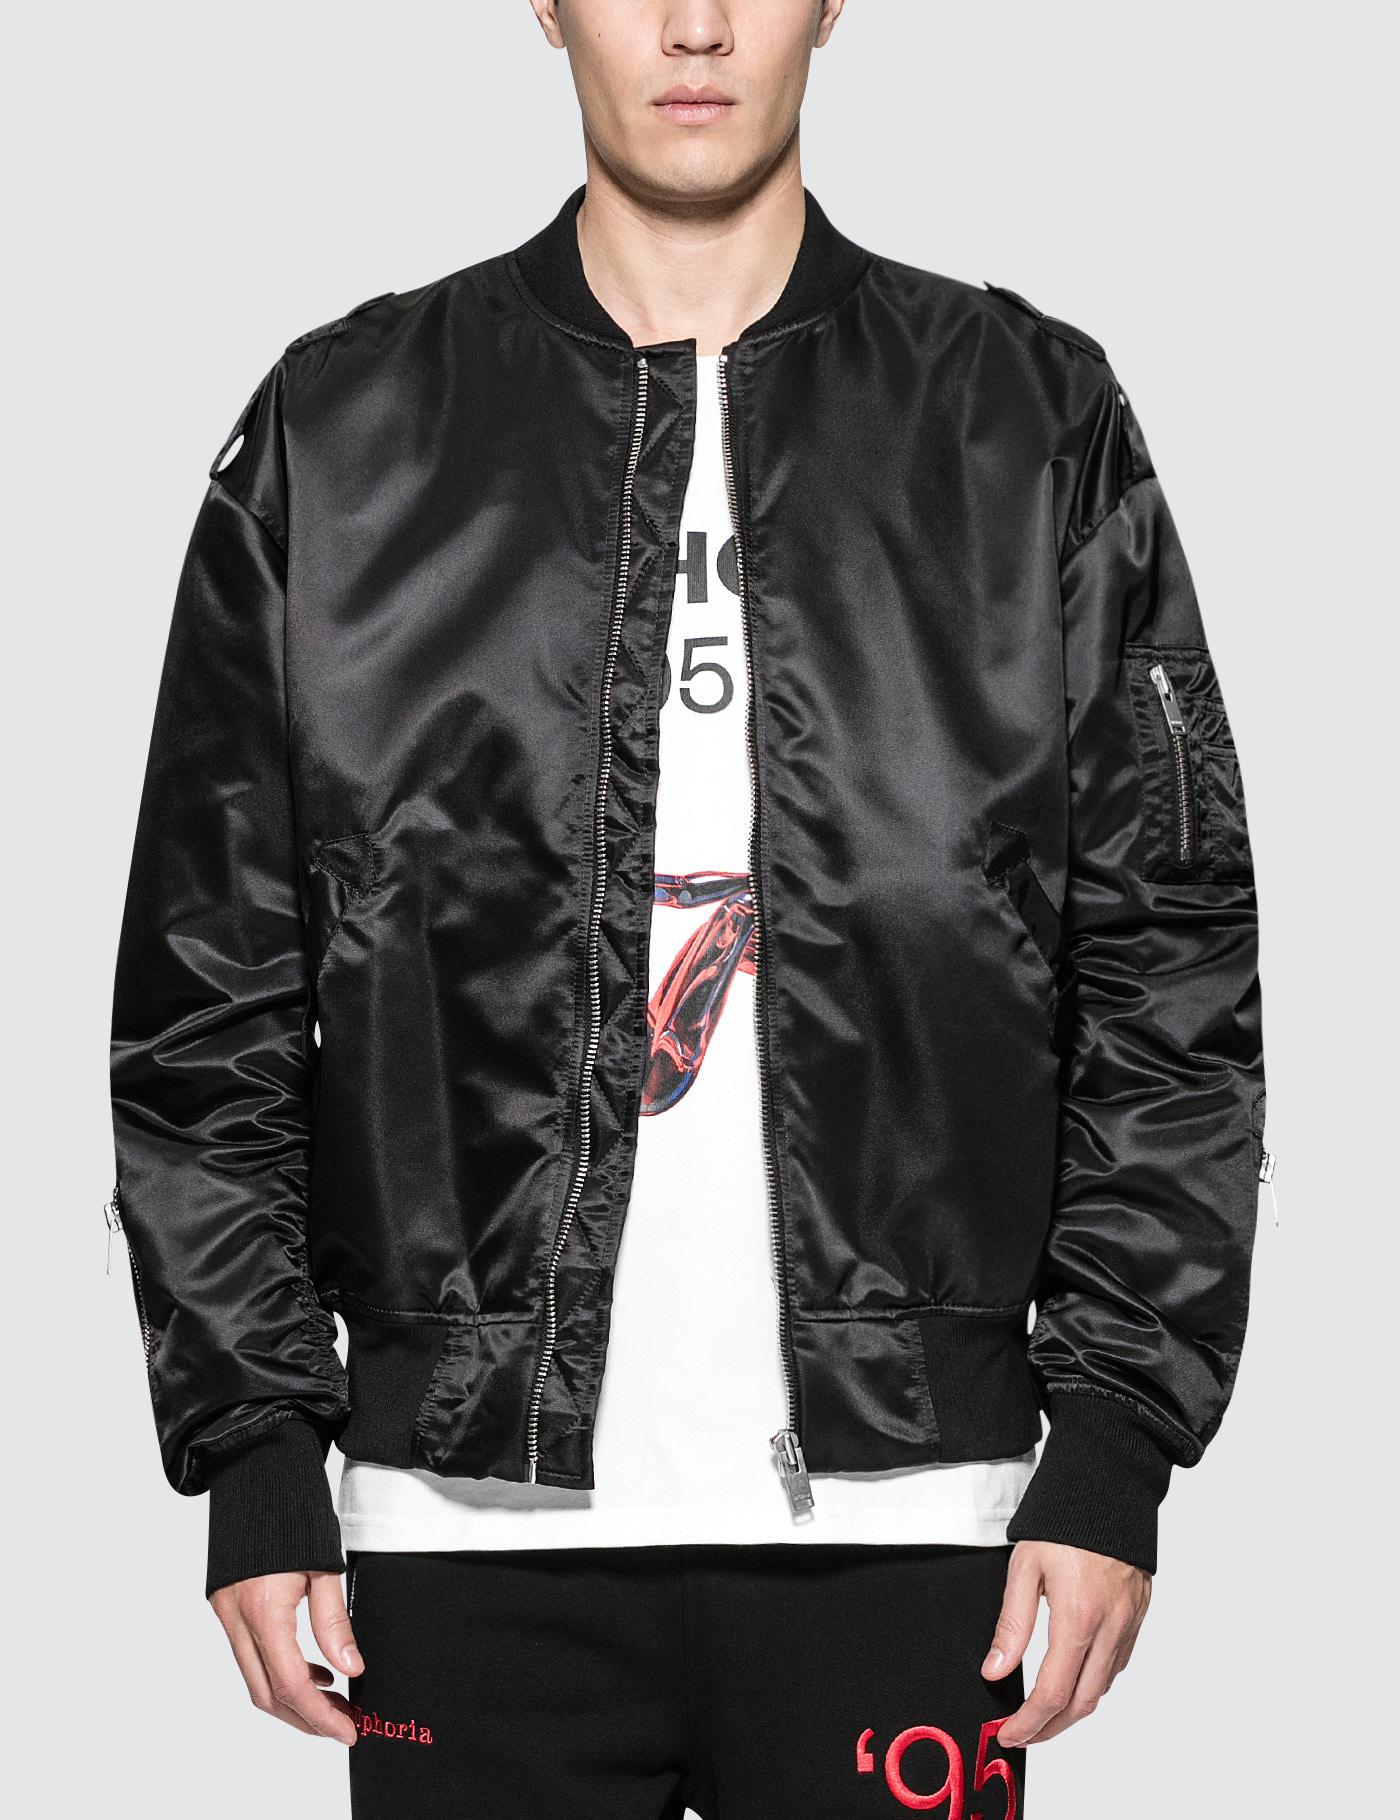 Clearance sale elegant shoes pretty and colorful MISBHV Synthetic Warszawa Bomber Jacket in Black for Men - Lyst